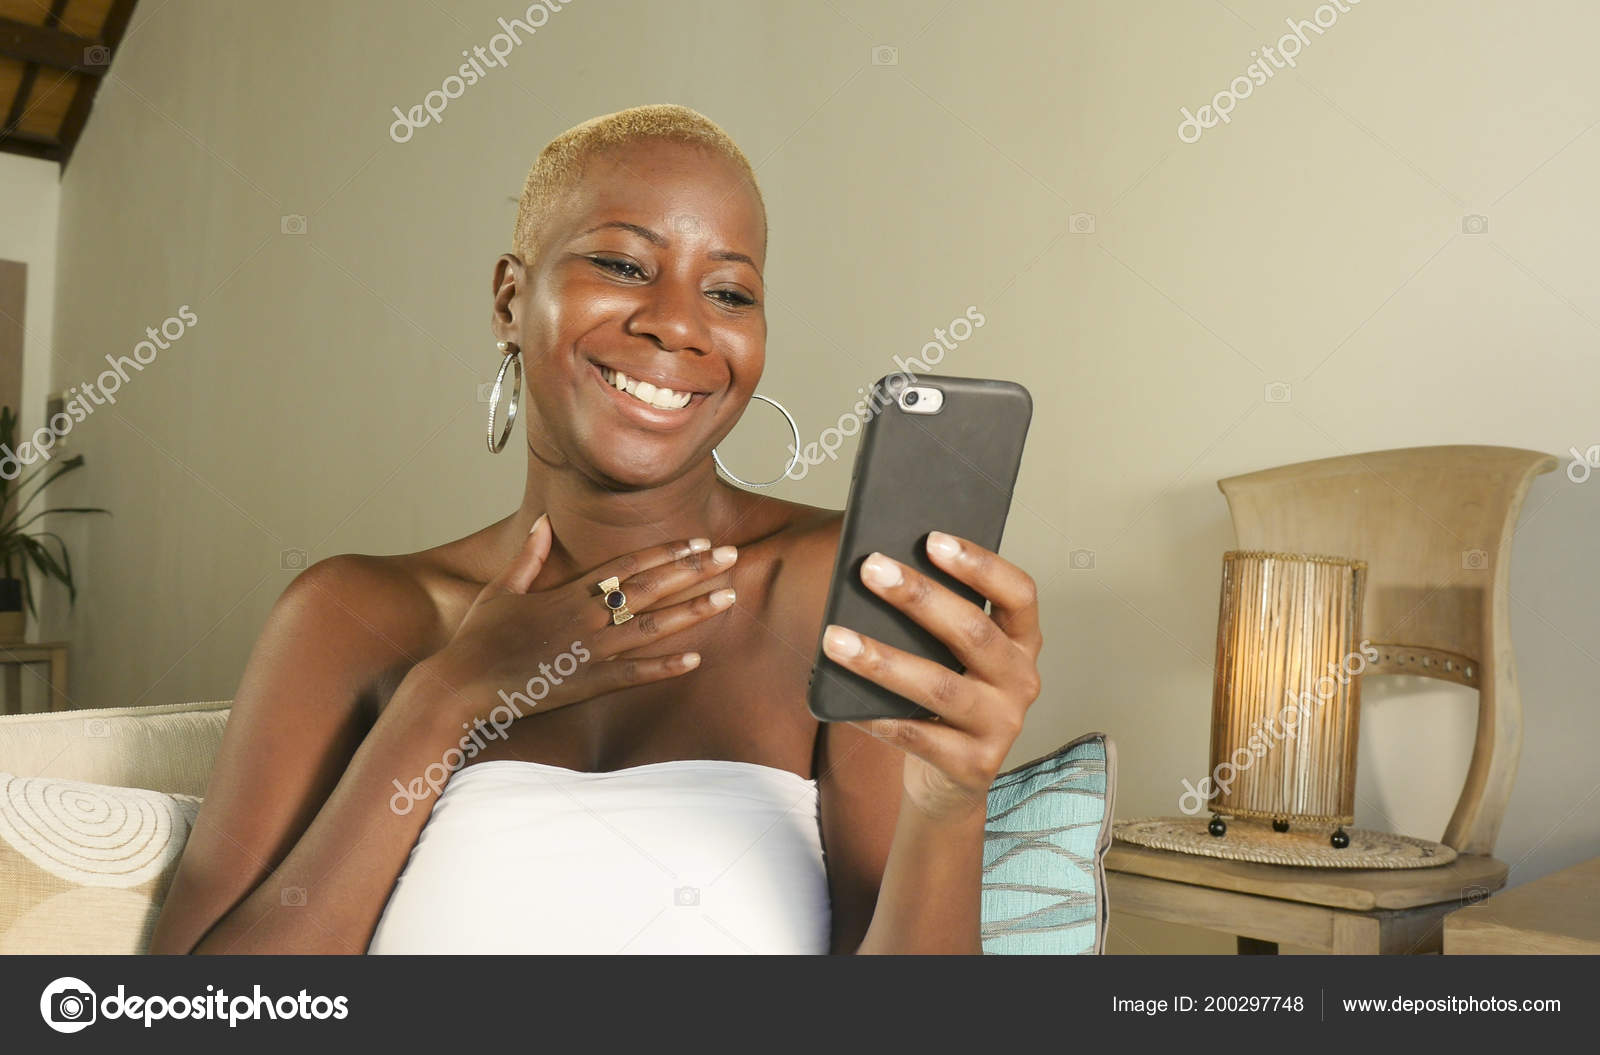 Young Beautiful Happy Black African American Woman Smiling Excited